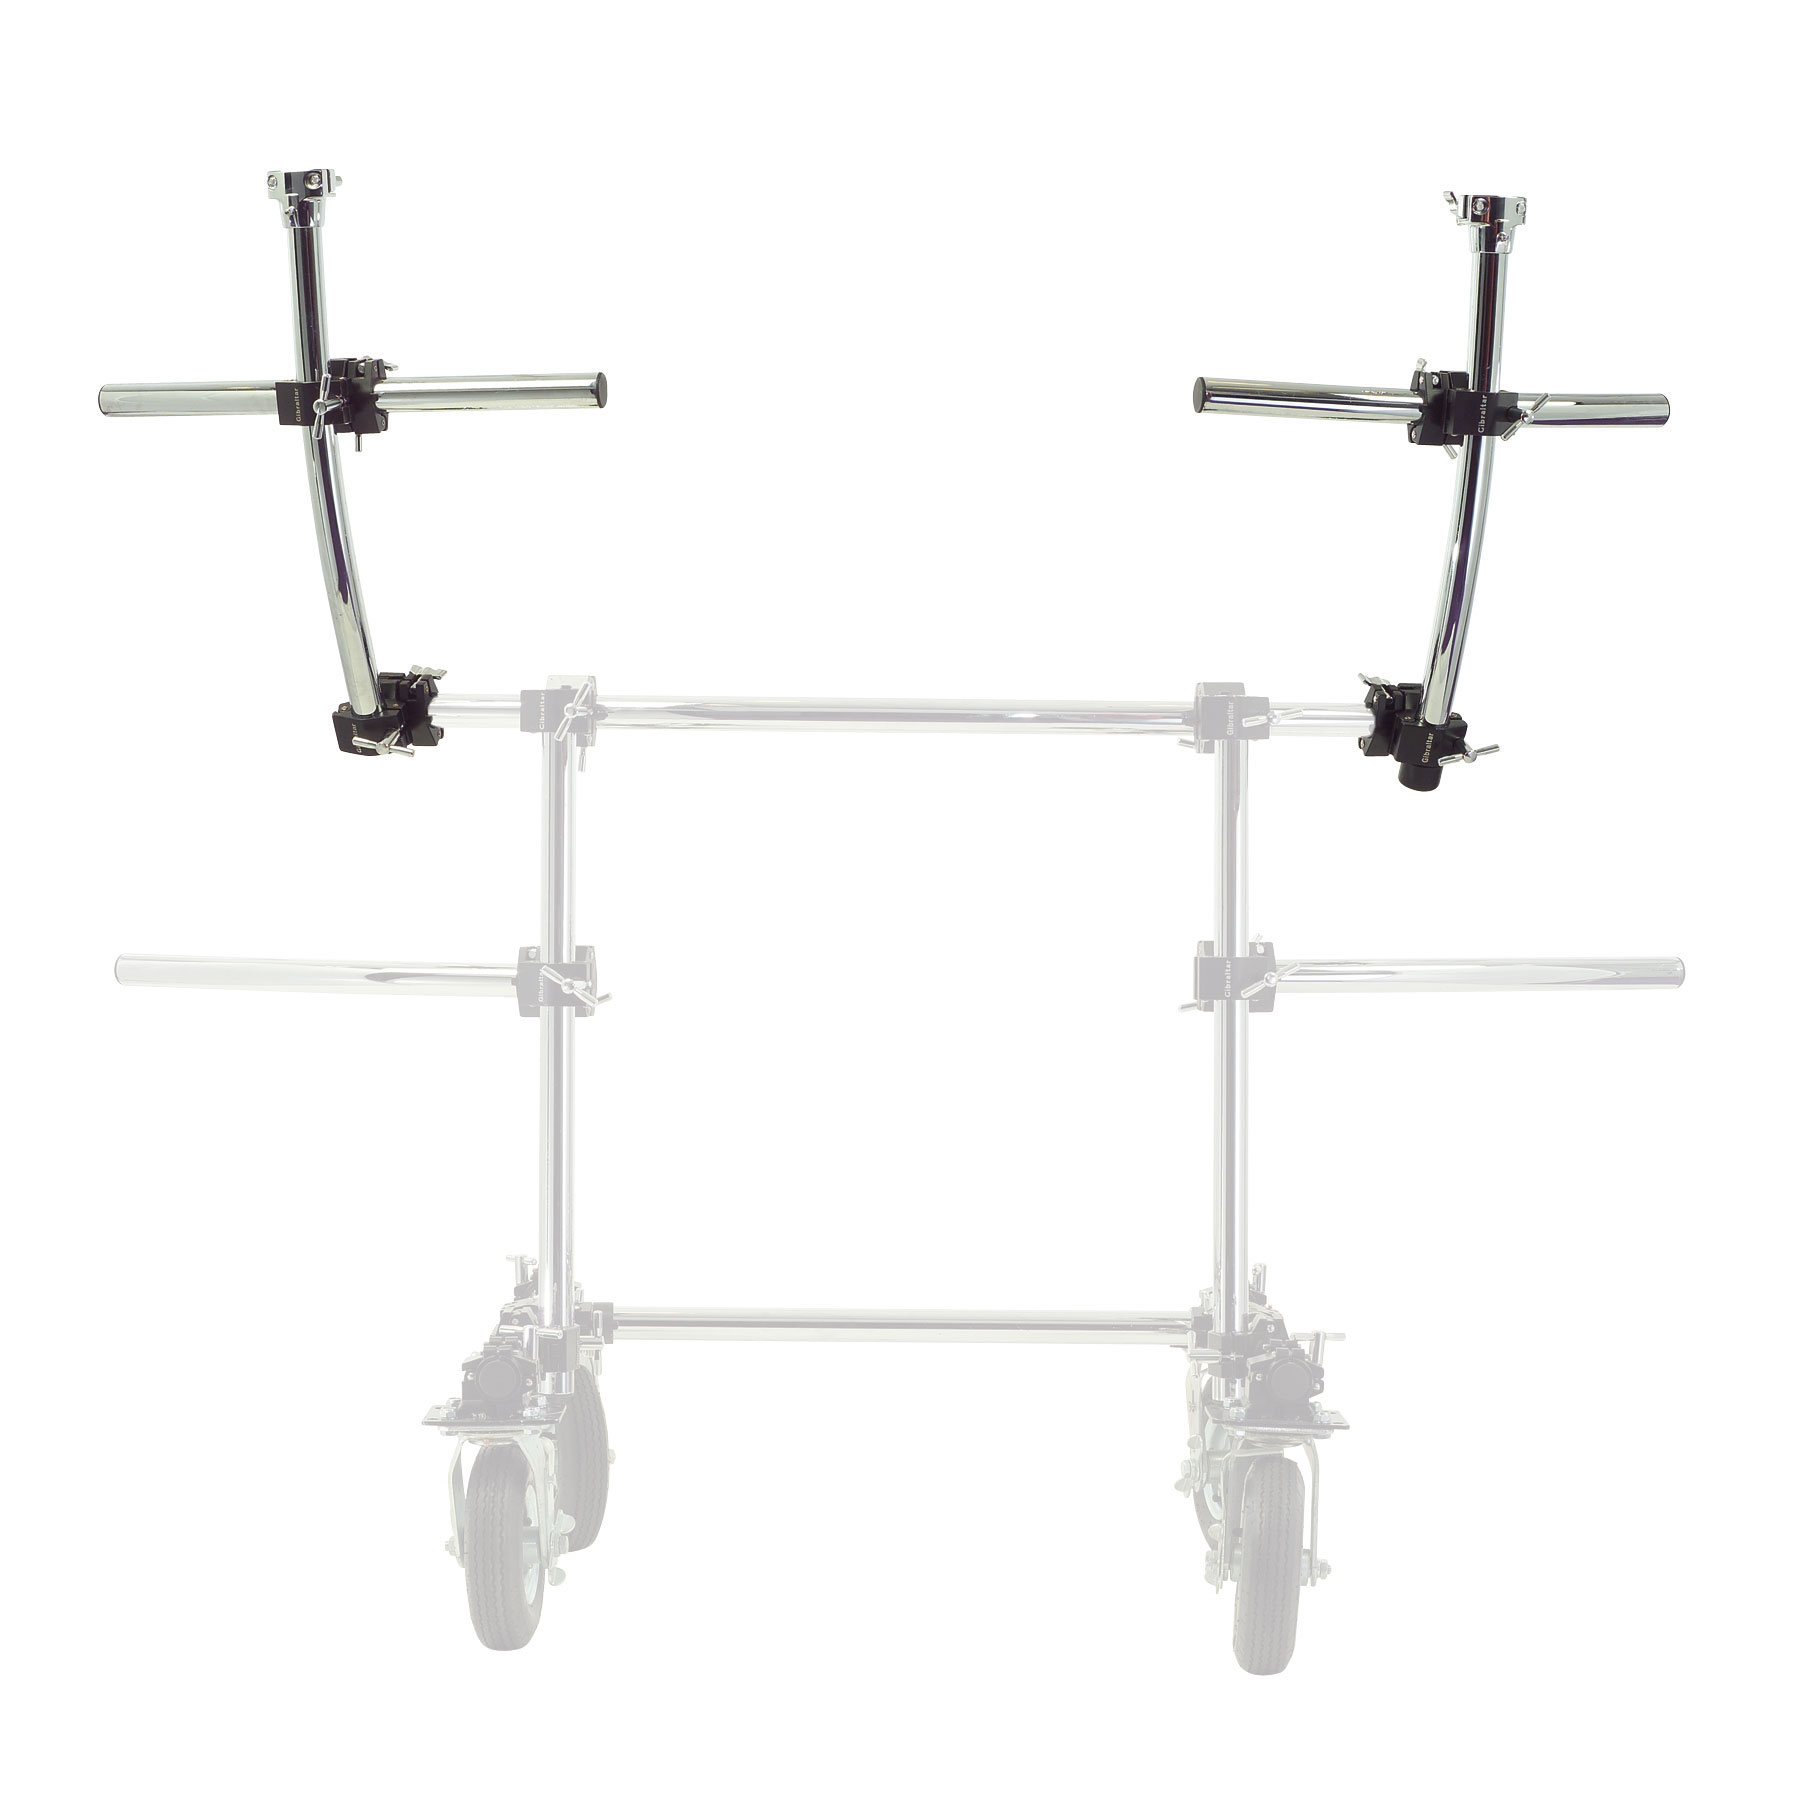 Gibraltar Rolling Frame Station with Casters - Second Tier Rack (GRF2T)